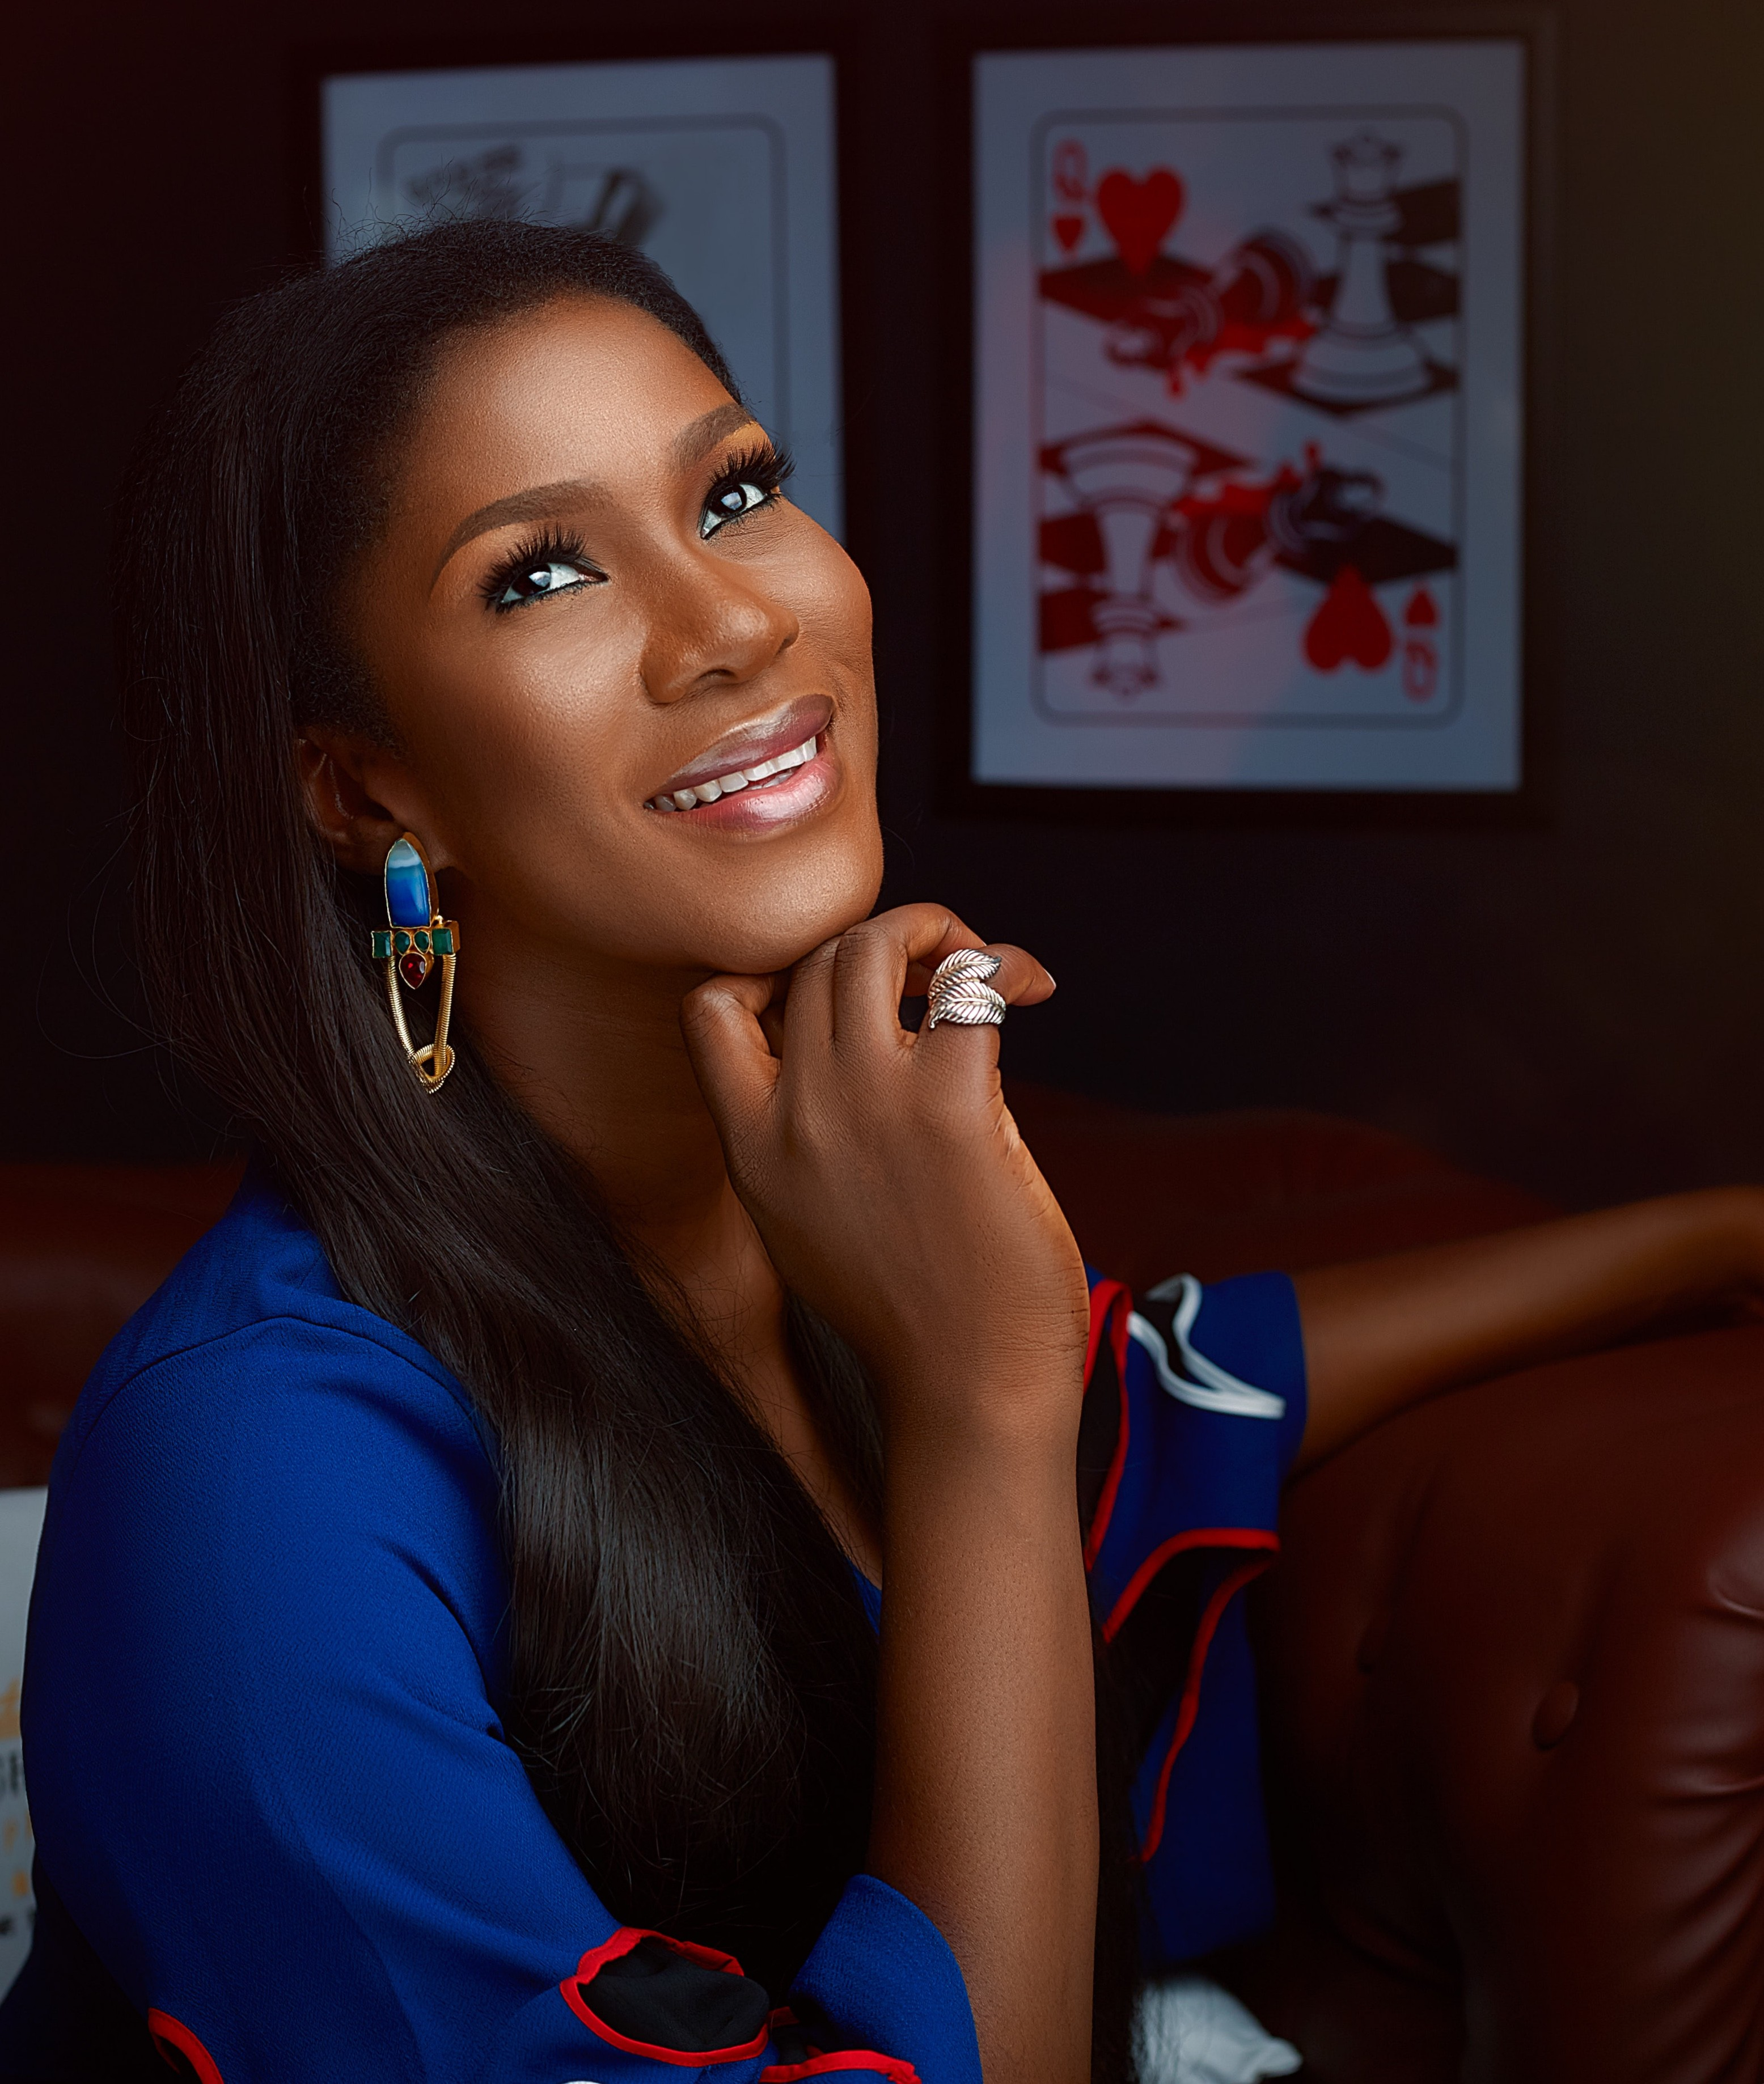 Stephanie Linus Becomes the ambassador for Nollycasting - The Number 1 Casting Site In Africa For Film/TV, Music Video, Commercials, Comedy & More!